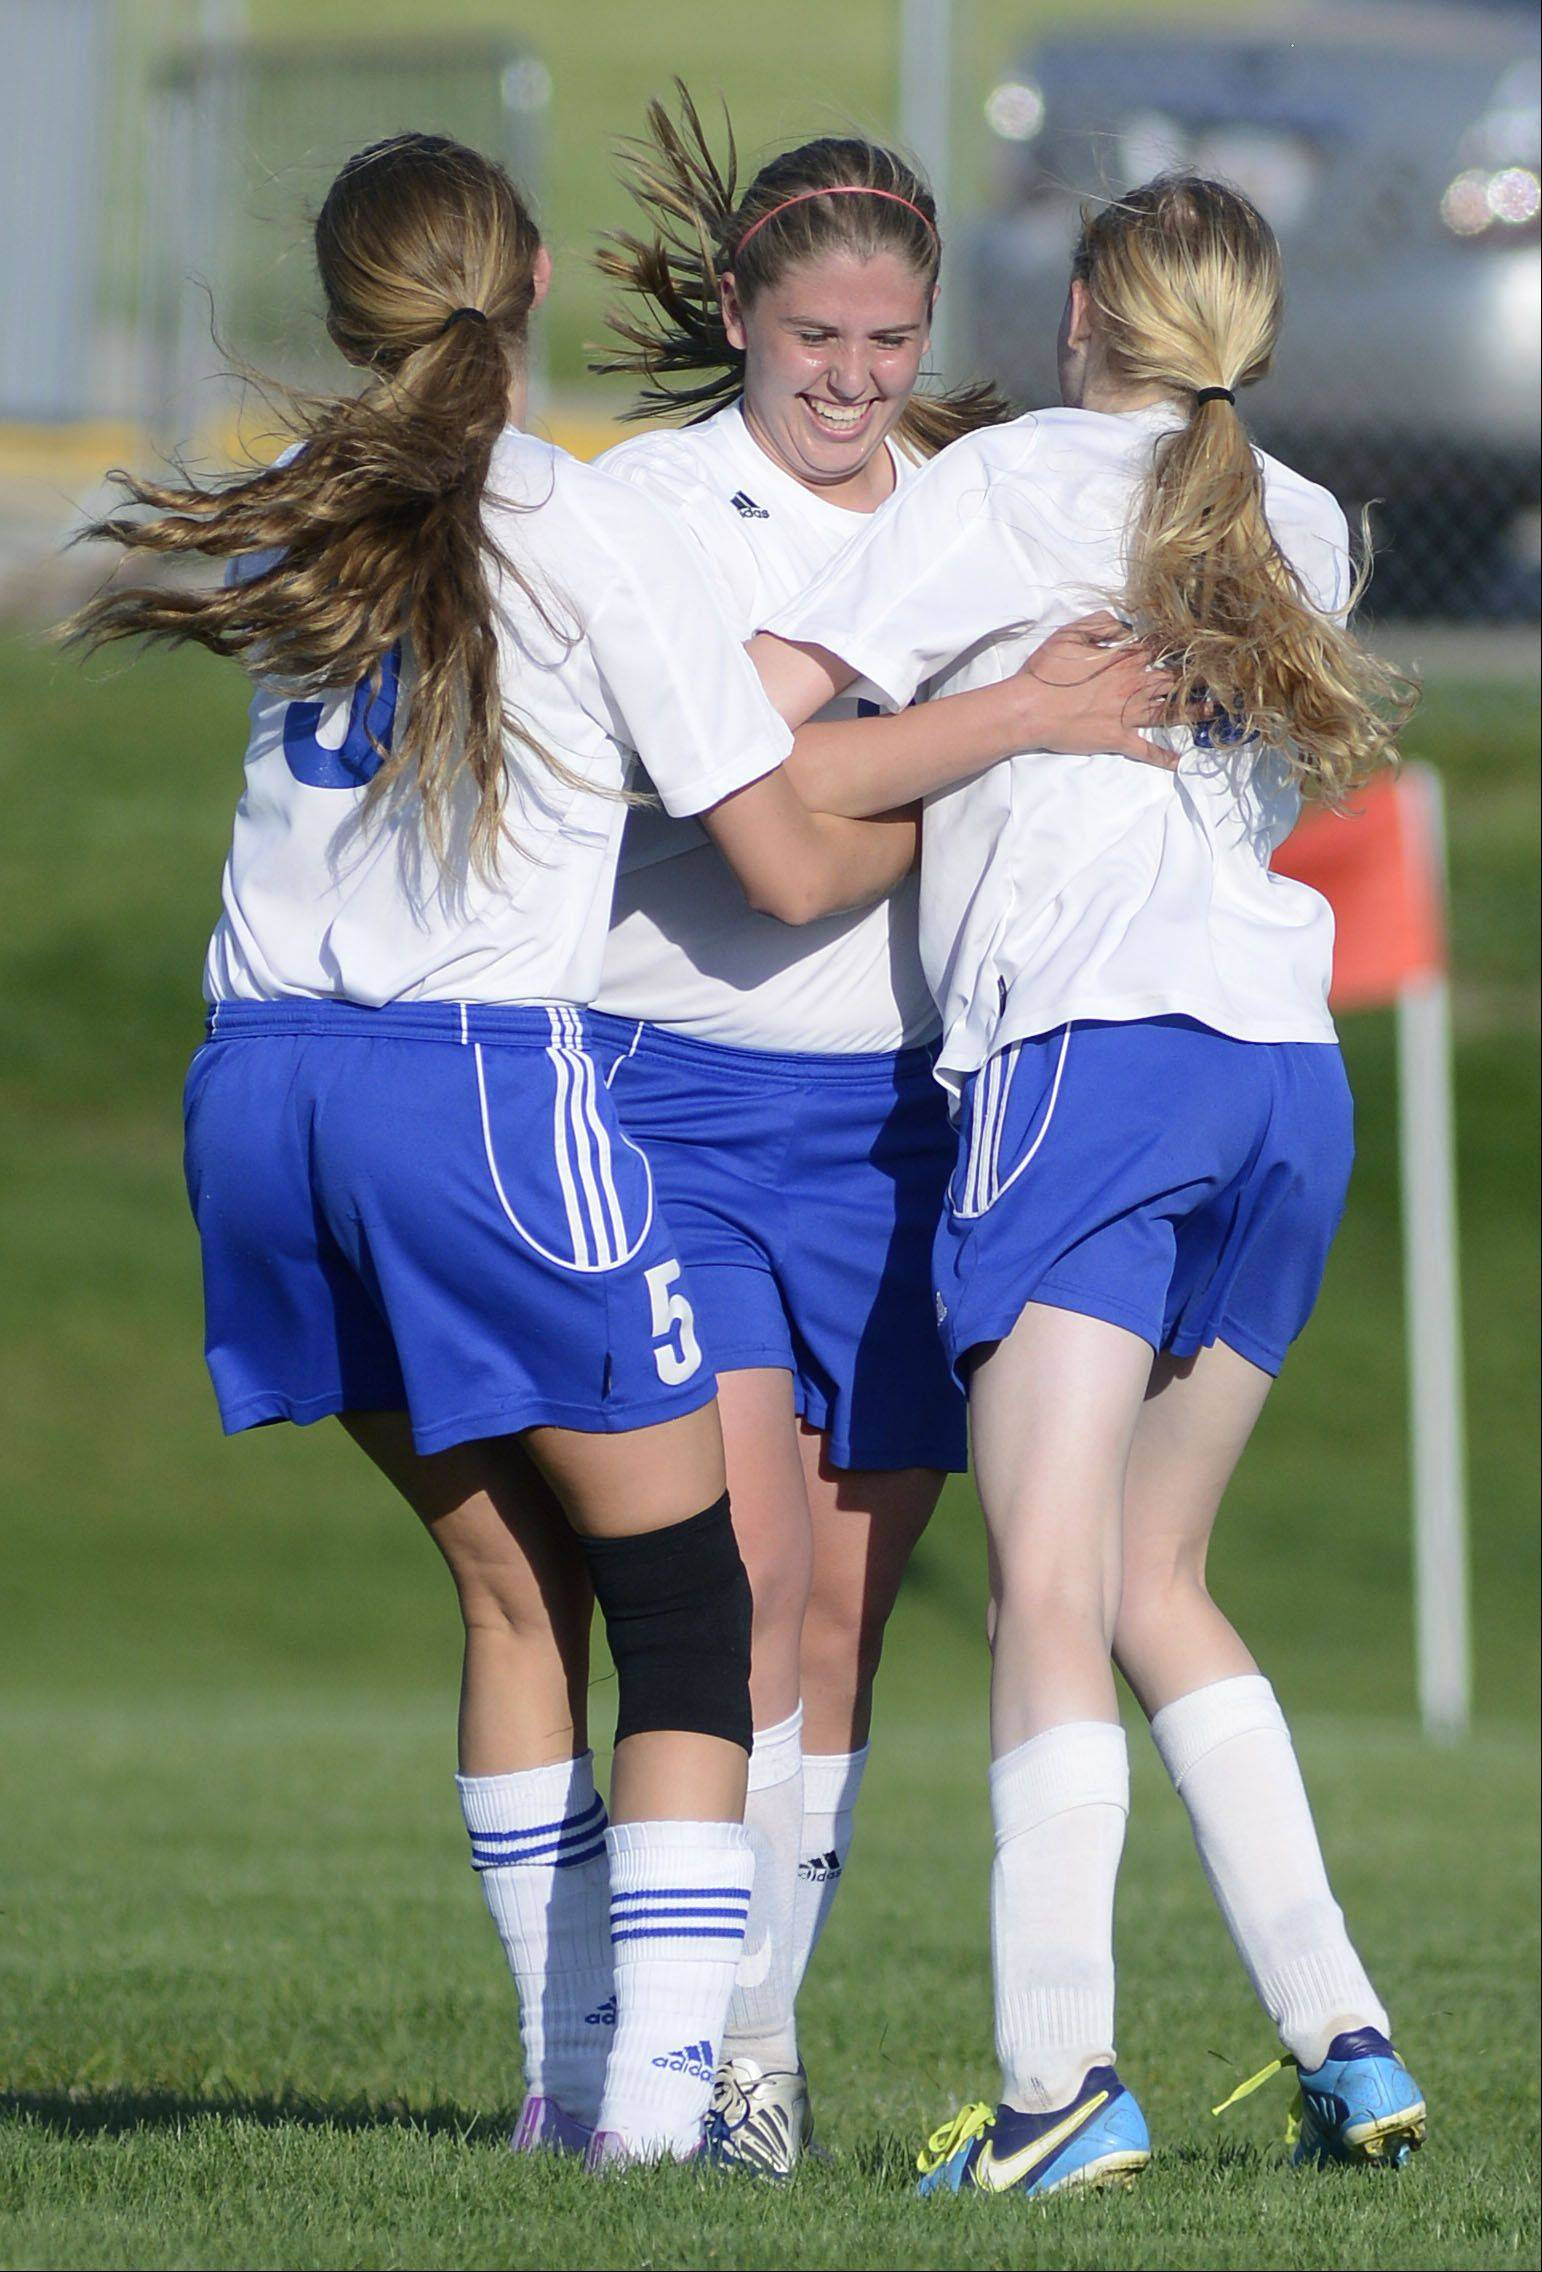 Burlington Central's Ellen Jayne, left, Alyssa Messina, center, and Cali Andrew embrace after tying the score with Hampshire in the second half of the Class 2A regional semifinal on Tuesday.